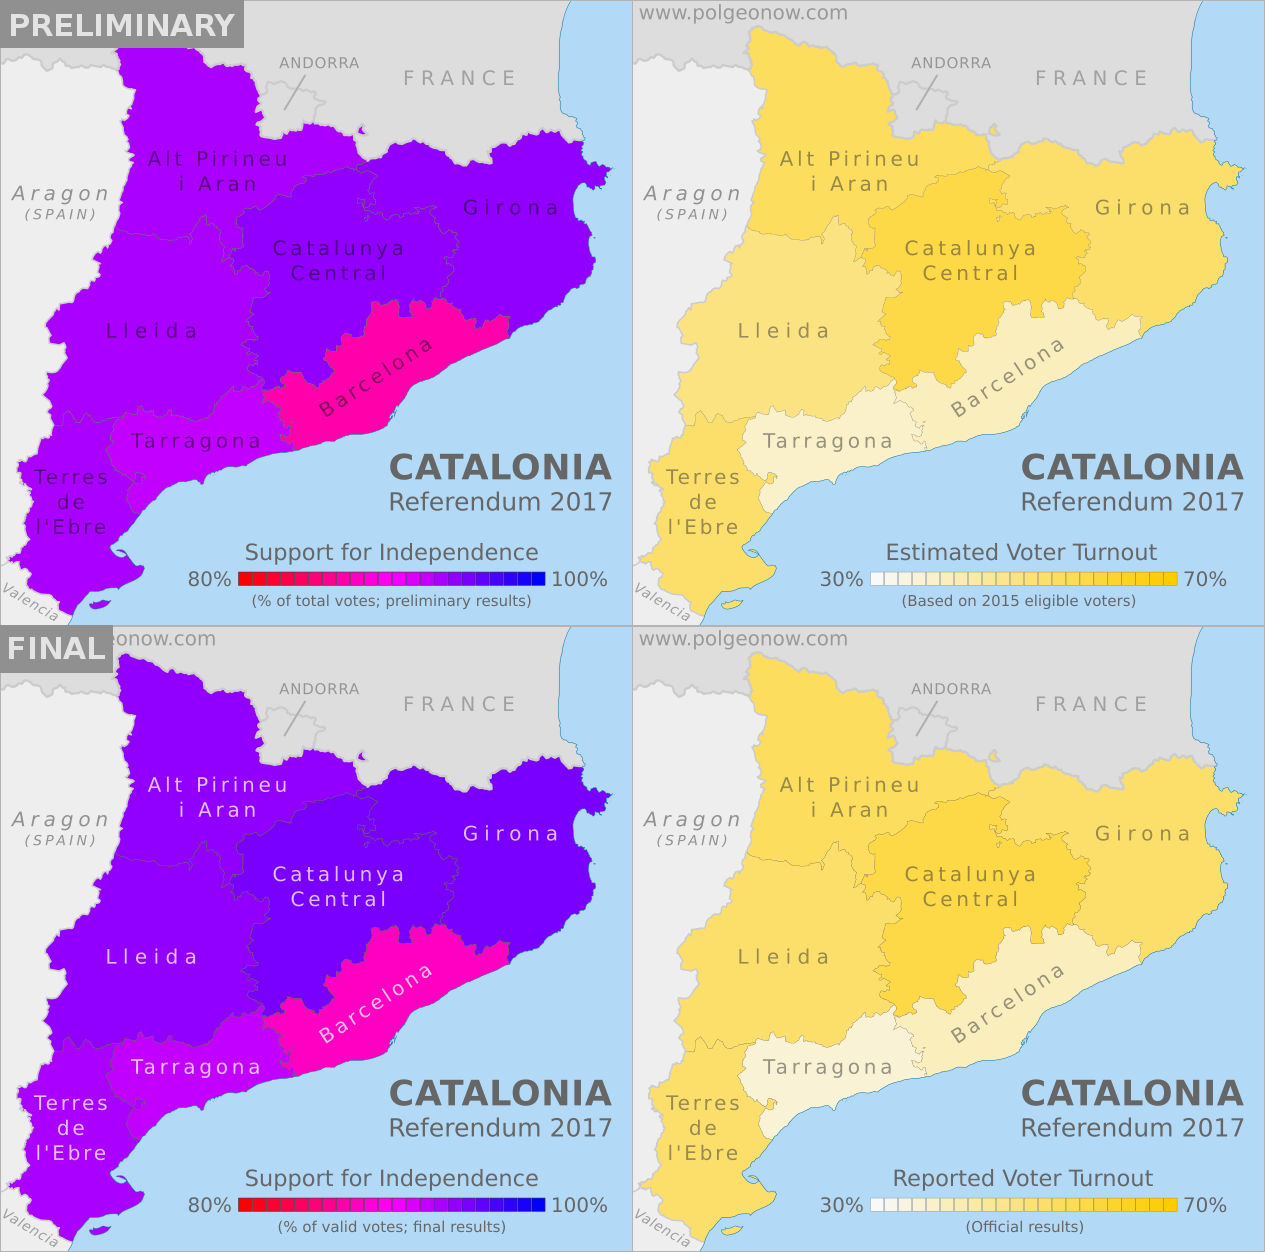 Updated Catalonia Referendum Results Maps How Did Each Region Vote